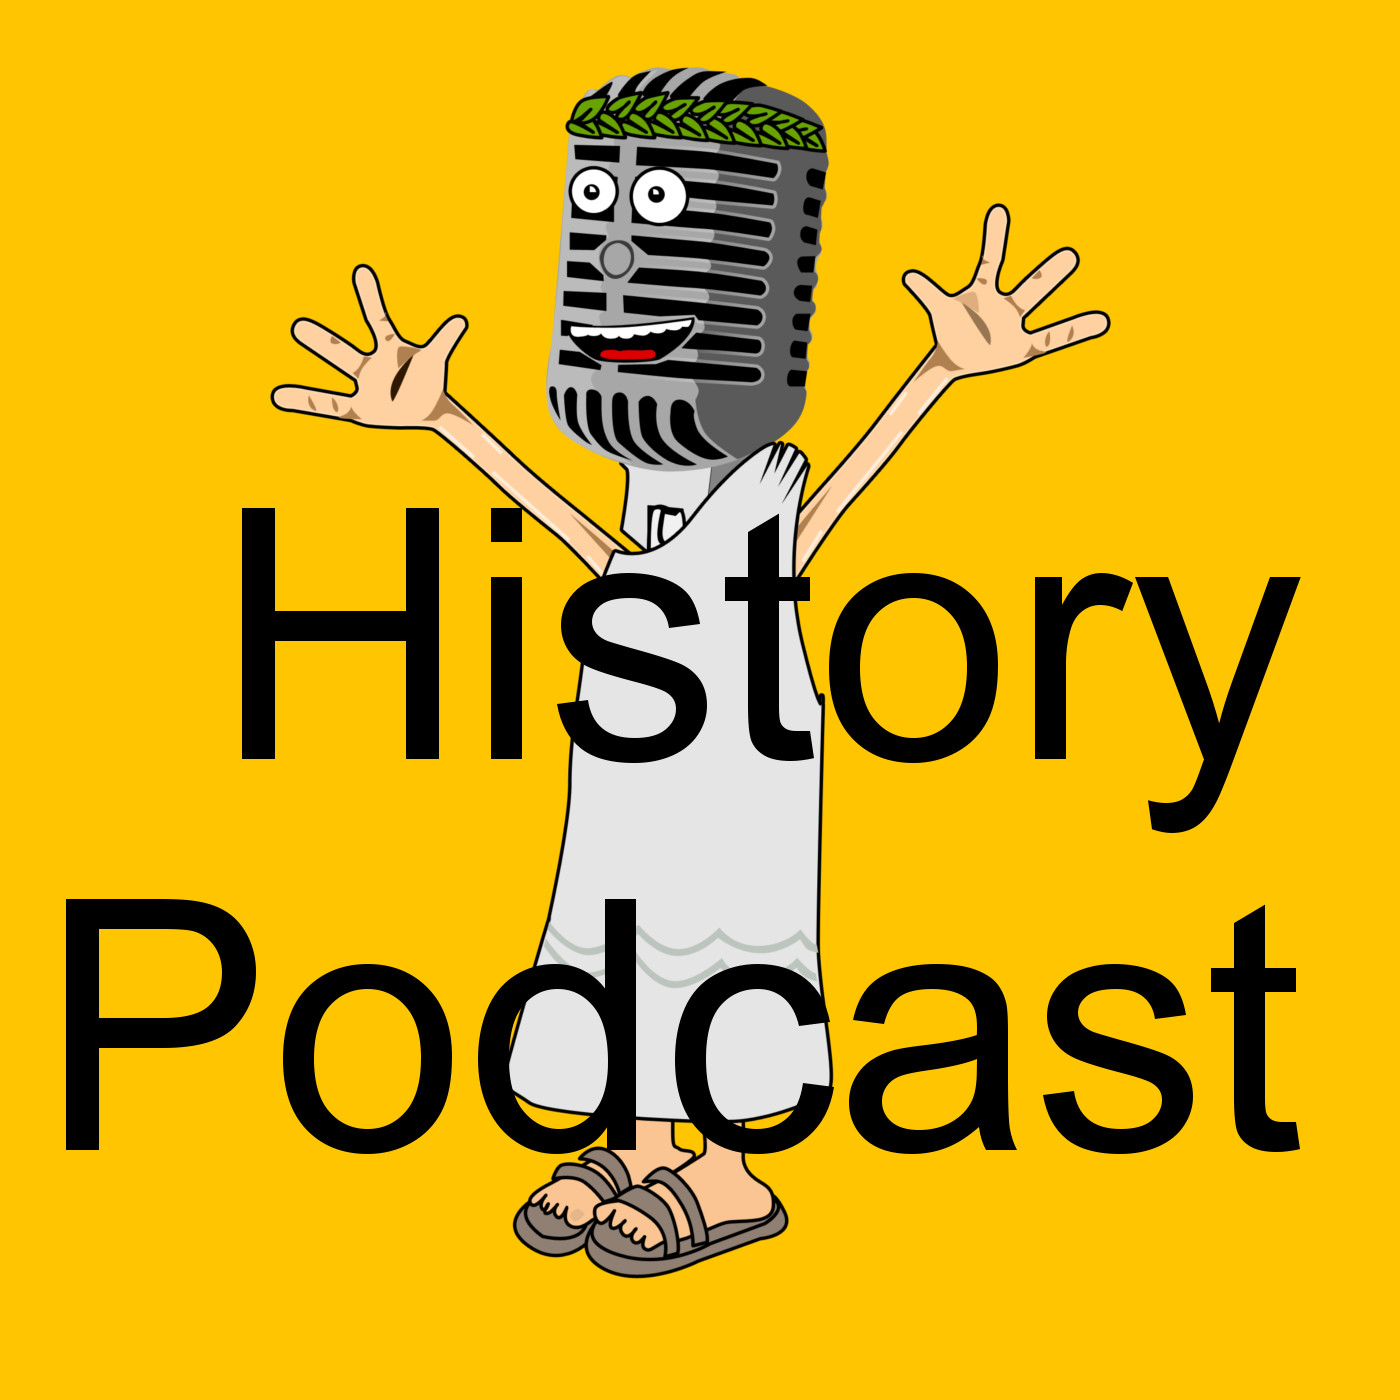 More History Podcasts...